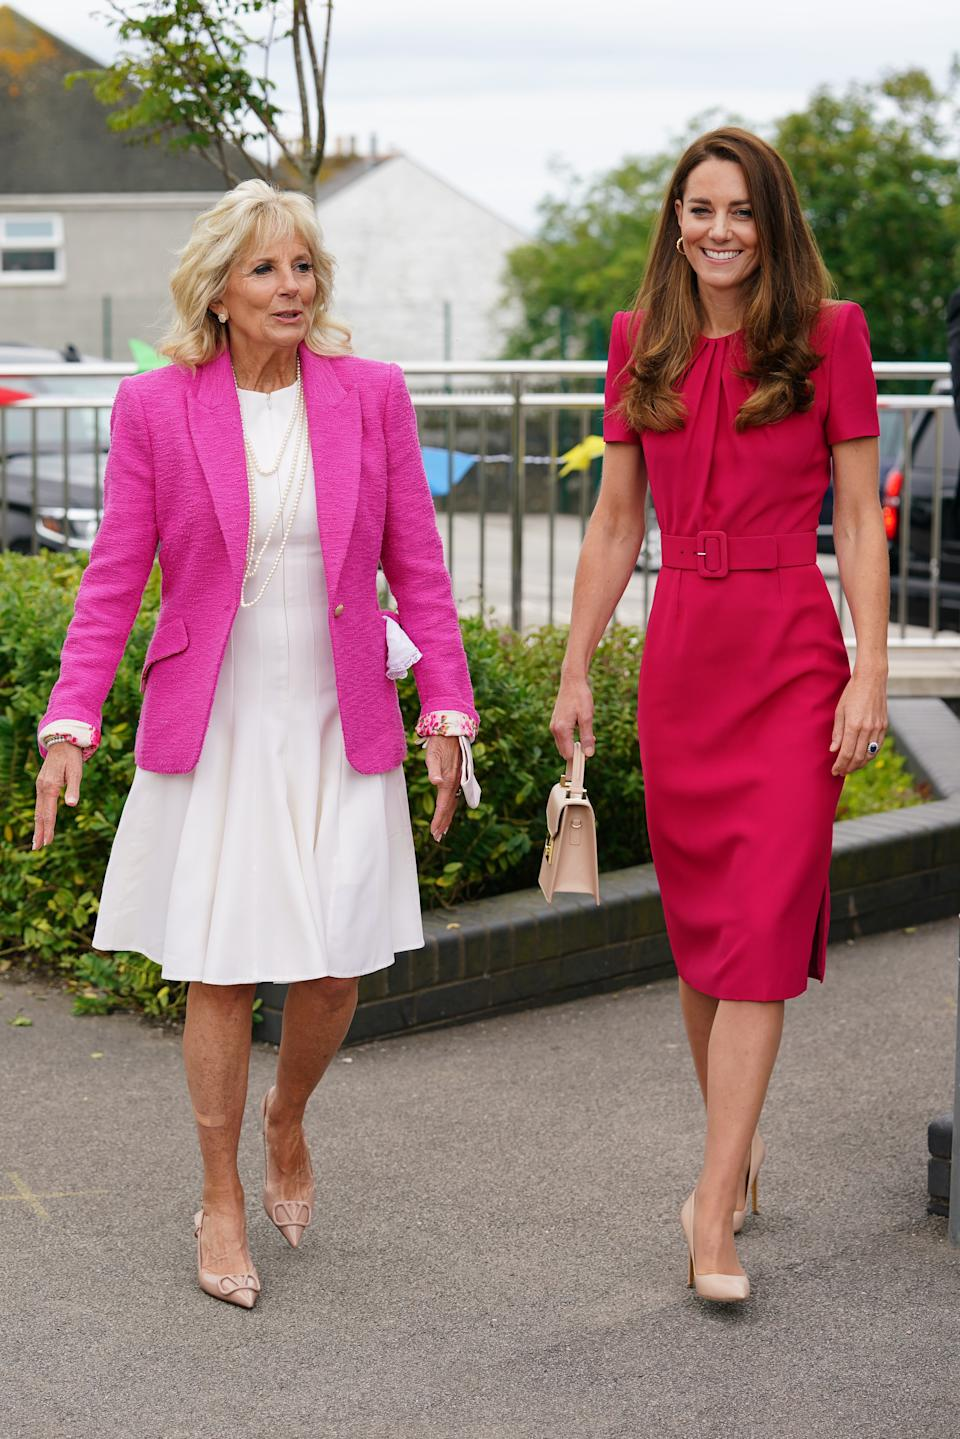 The Duchess of Cambridge (R) and U.S. First Lady Dr Jill Biden (L) wowed in vibrant shades of pink on an official engagement in Cornwall. (Photo by Aaron Chown/WPA Pool/Getty Images)